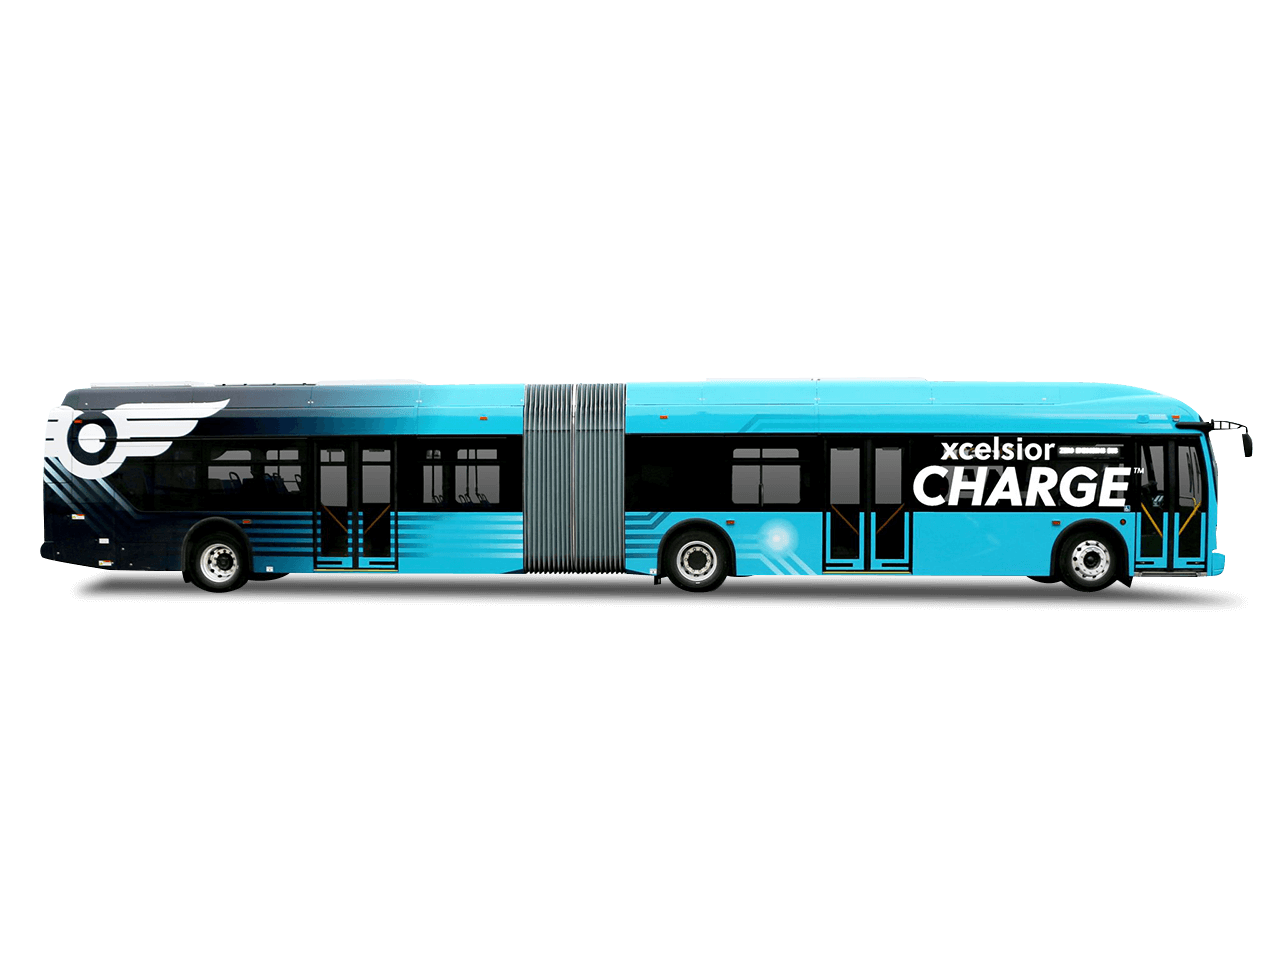 New Flyer Xcelsior Charge NG 60' 525 kWh